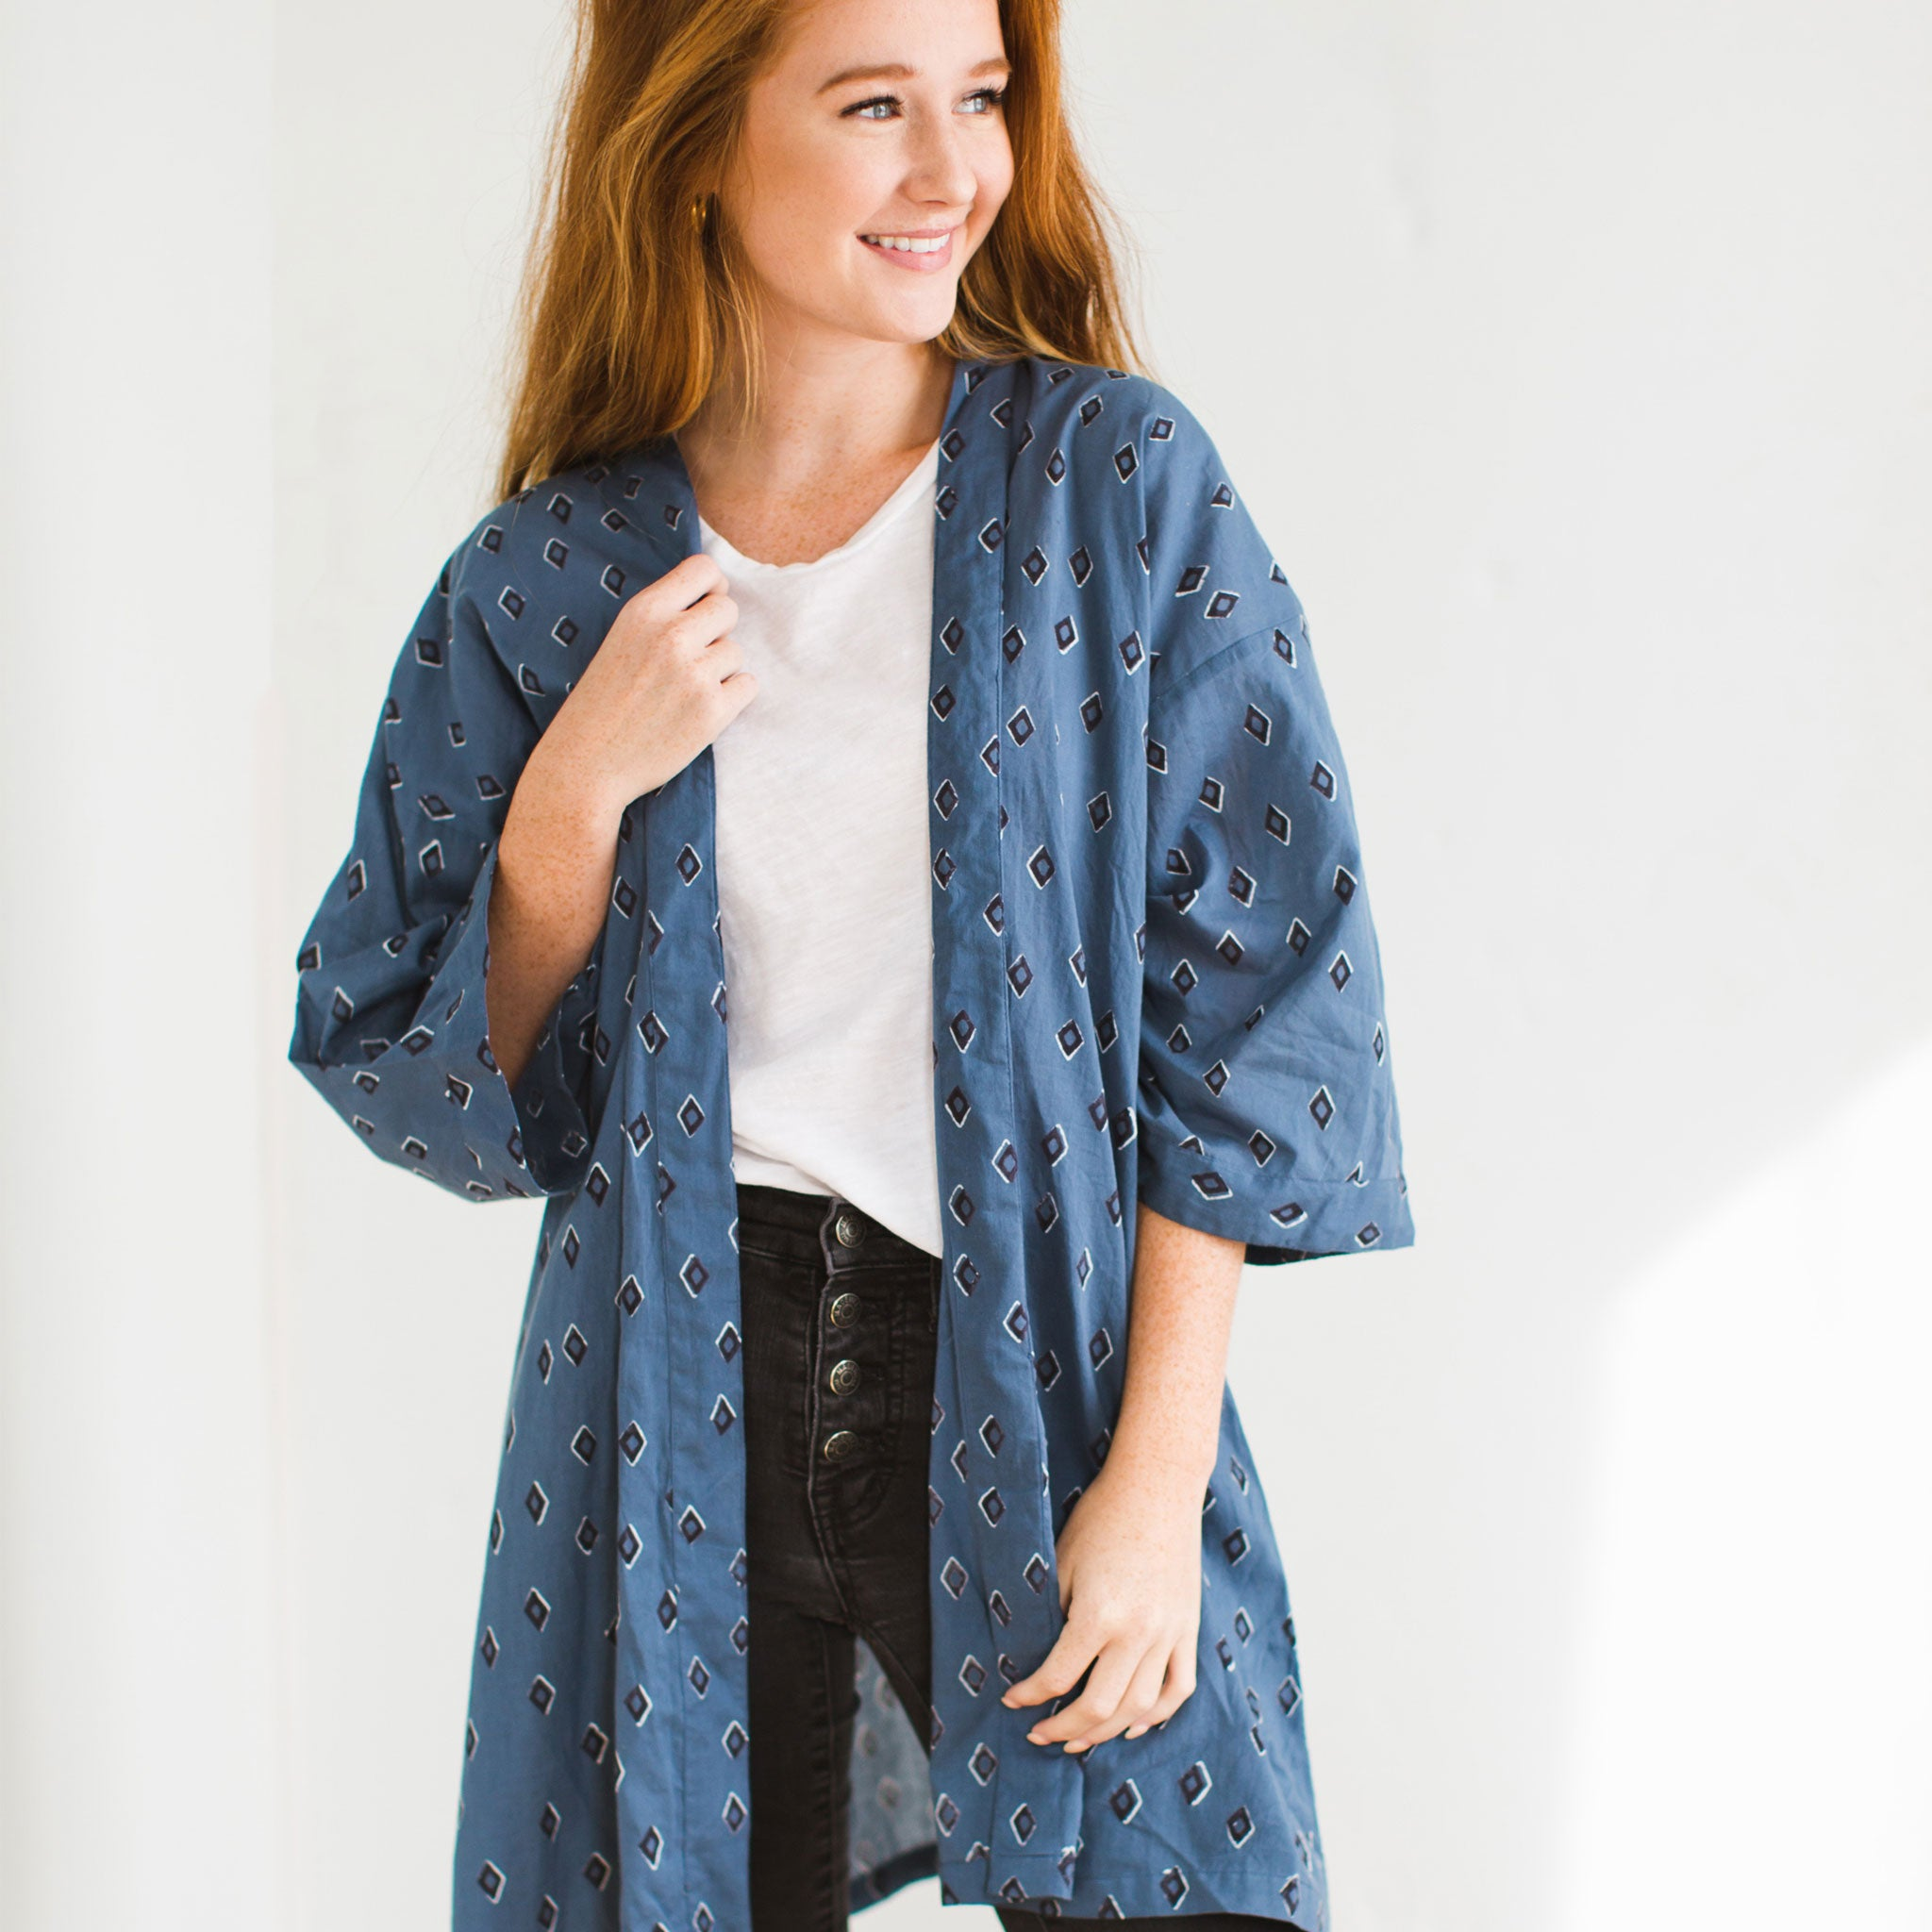 Tiz Ocean Block Printed Cotton Haori